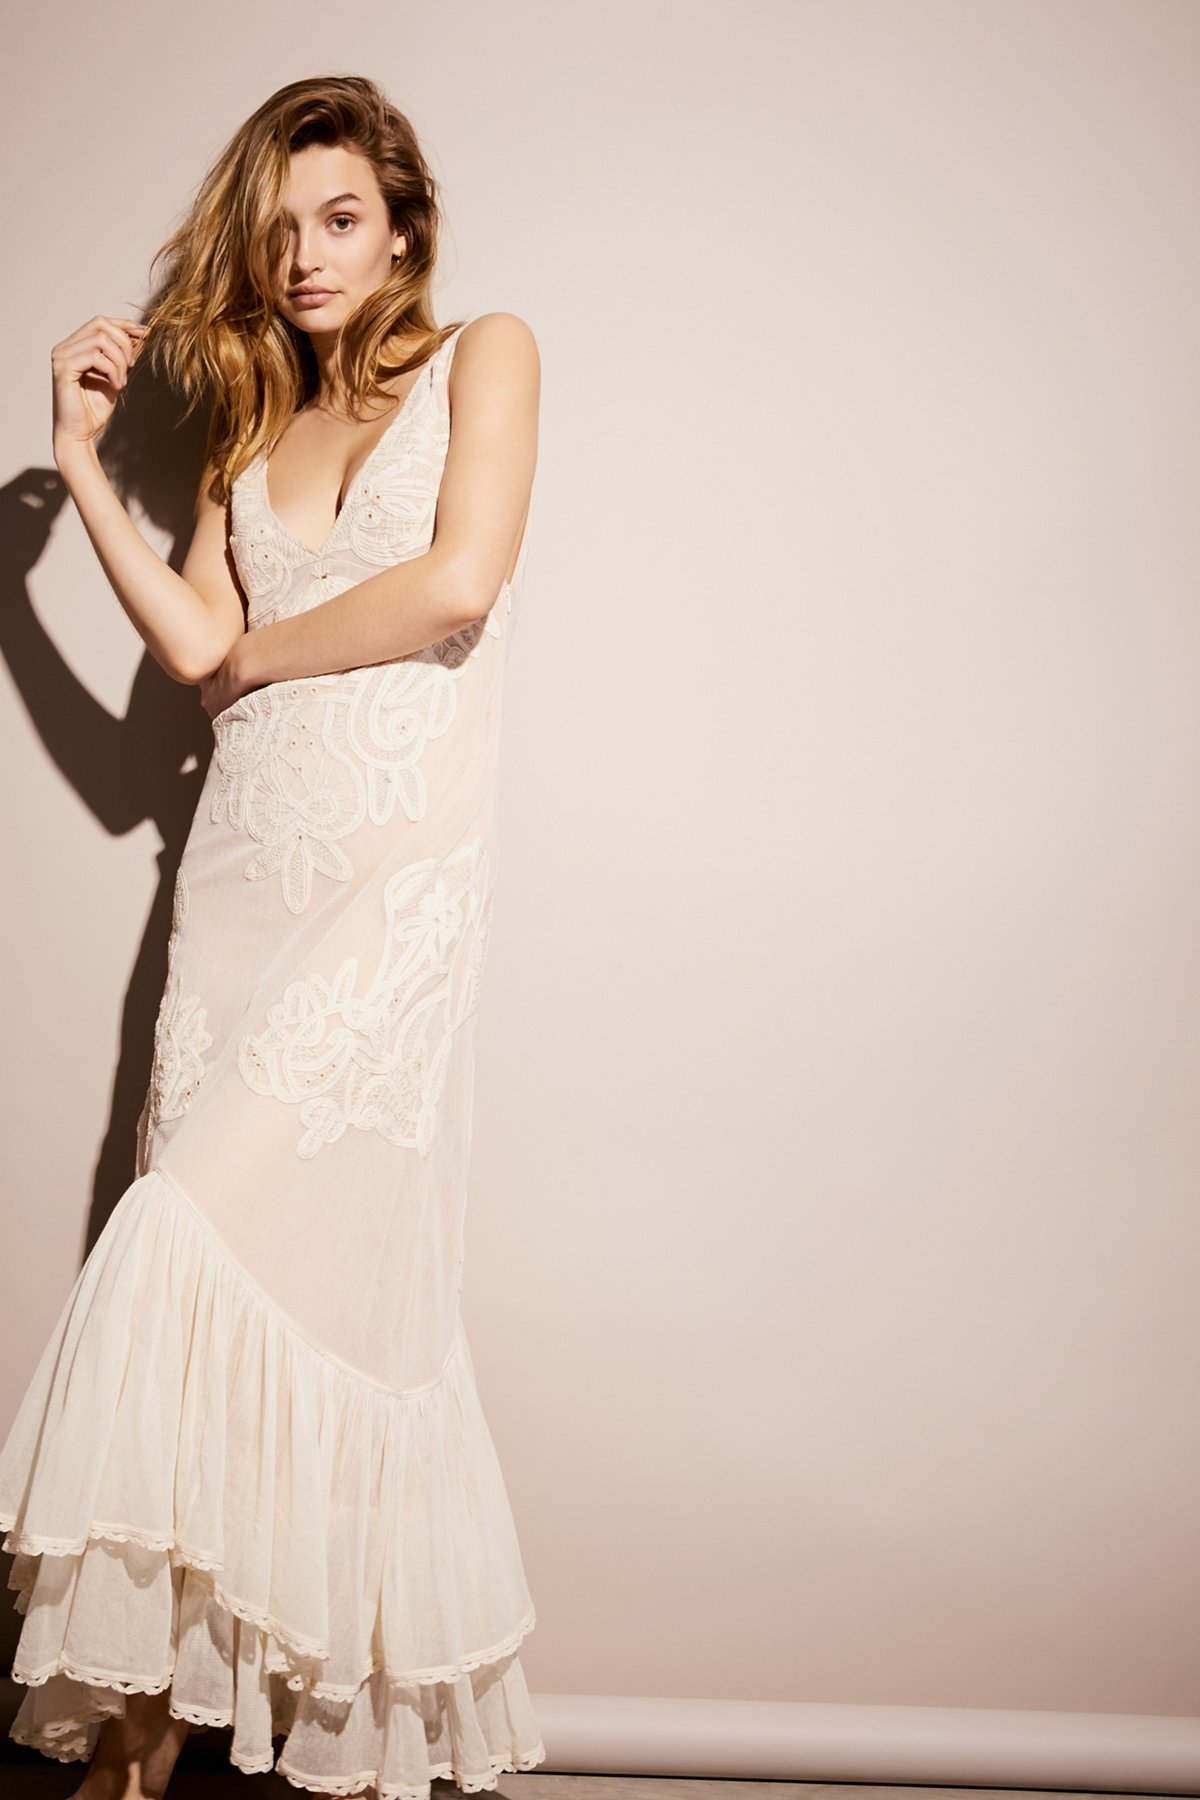 Alissa's Limited Edition White Dress